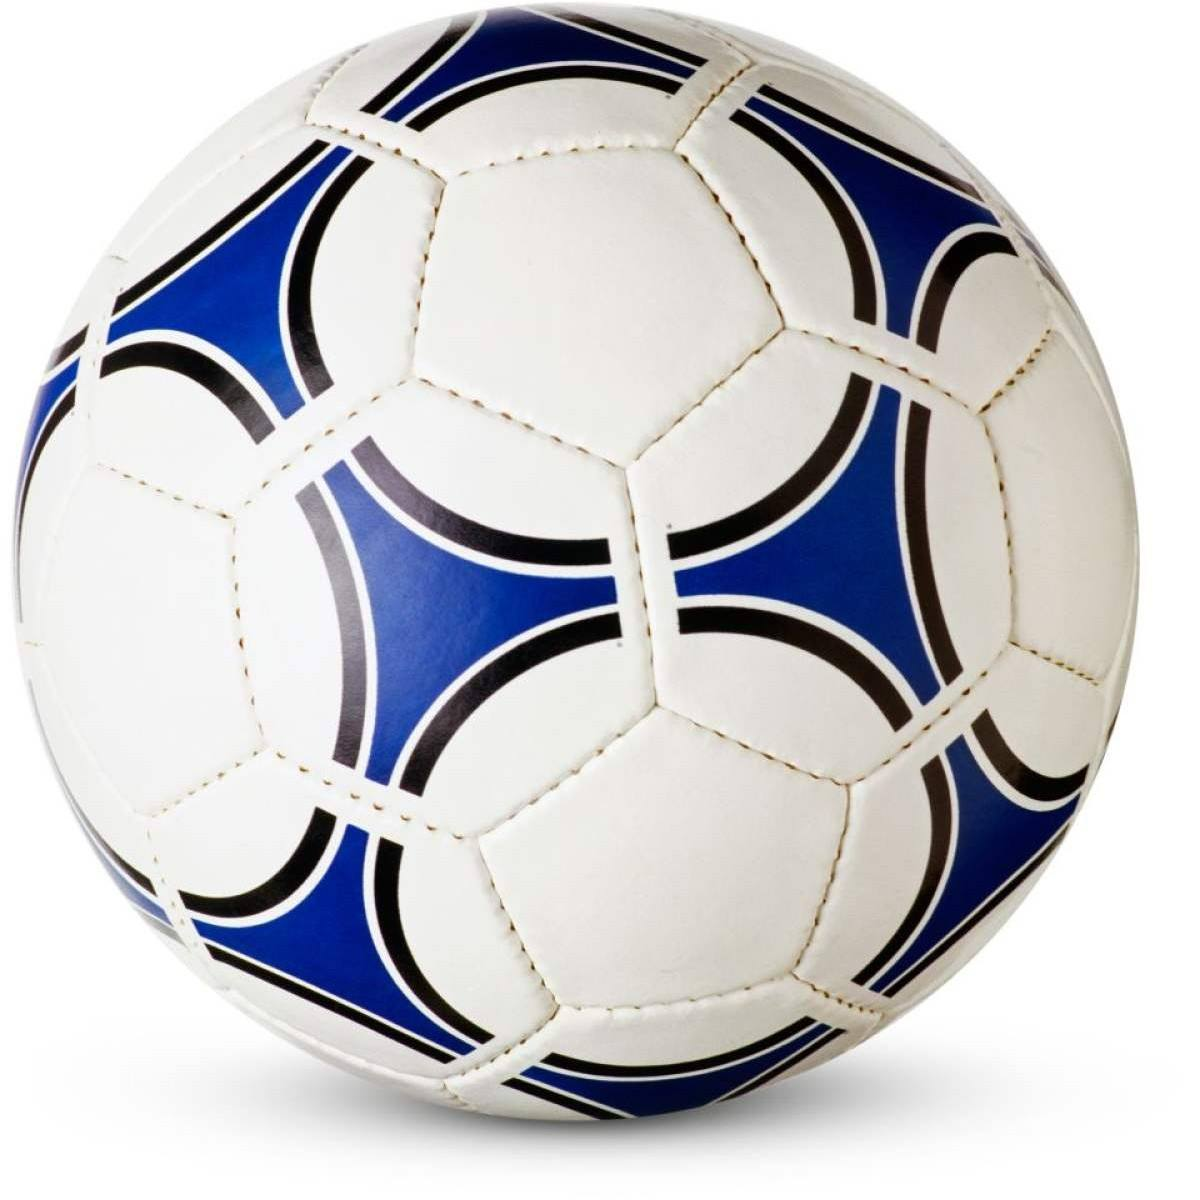 Beautiful Standard Size Leather Football for Professional Game, For Boys Or Kids Foot ball Games (A-Grade Quality )